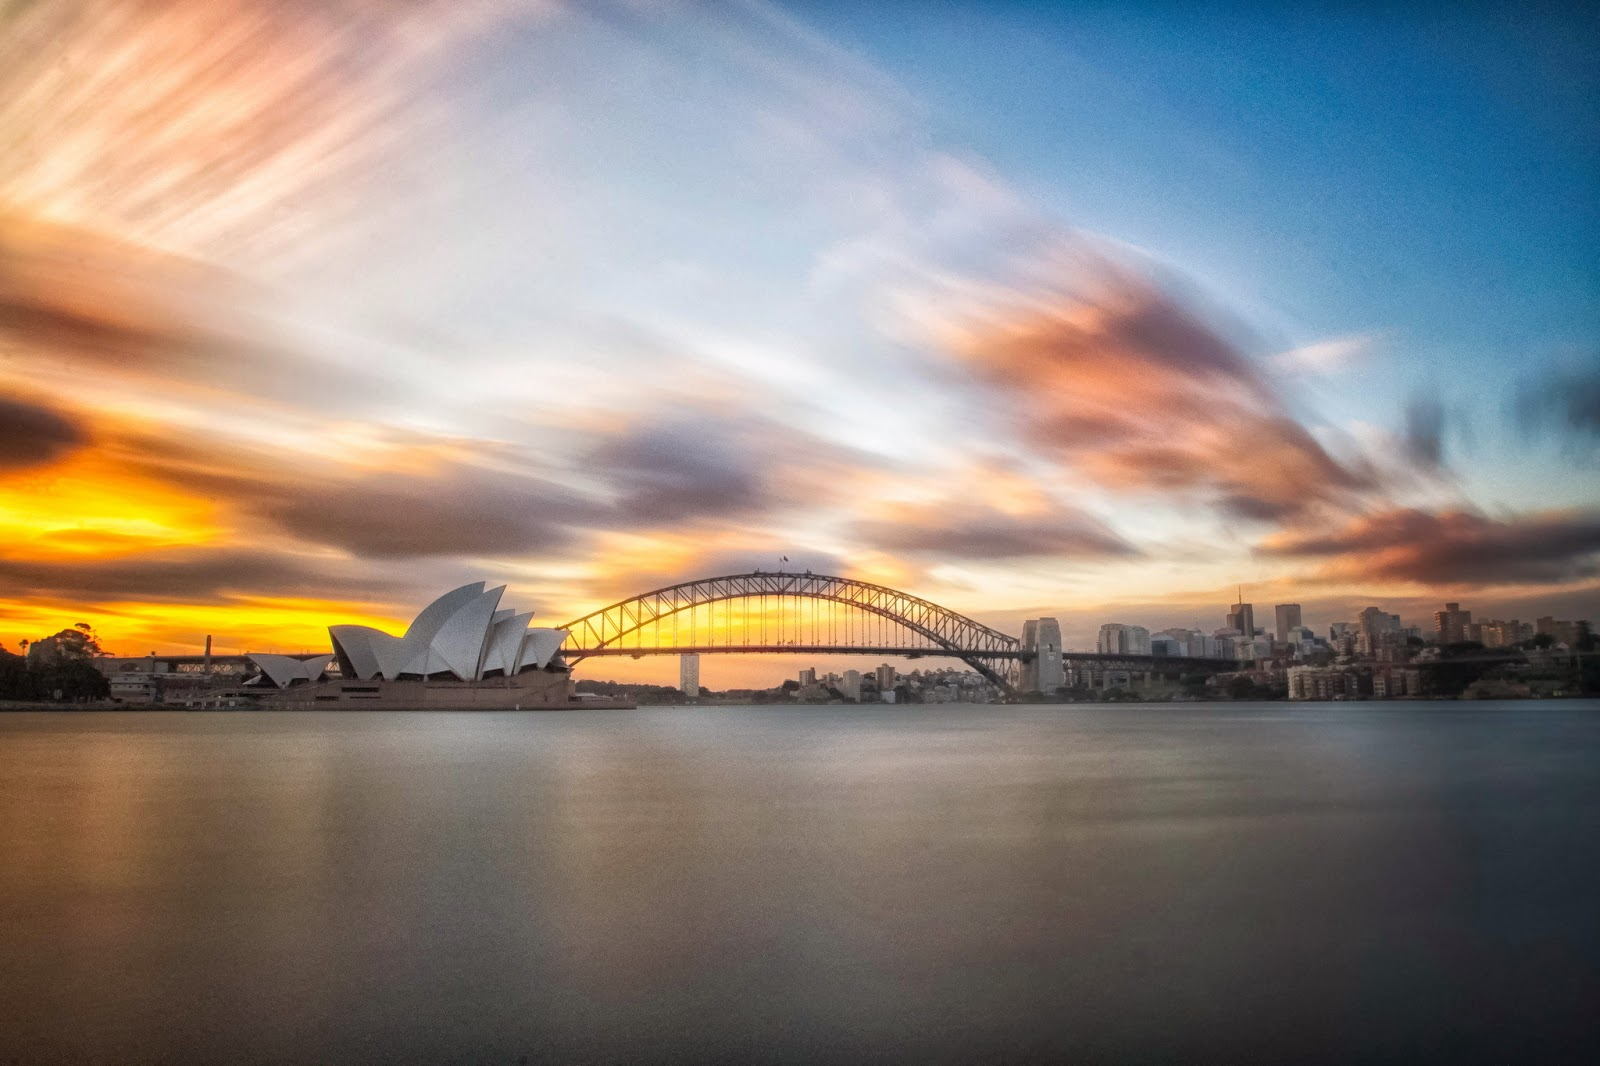 sydney australia Clint Sharp